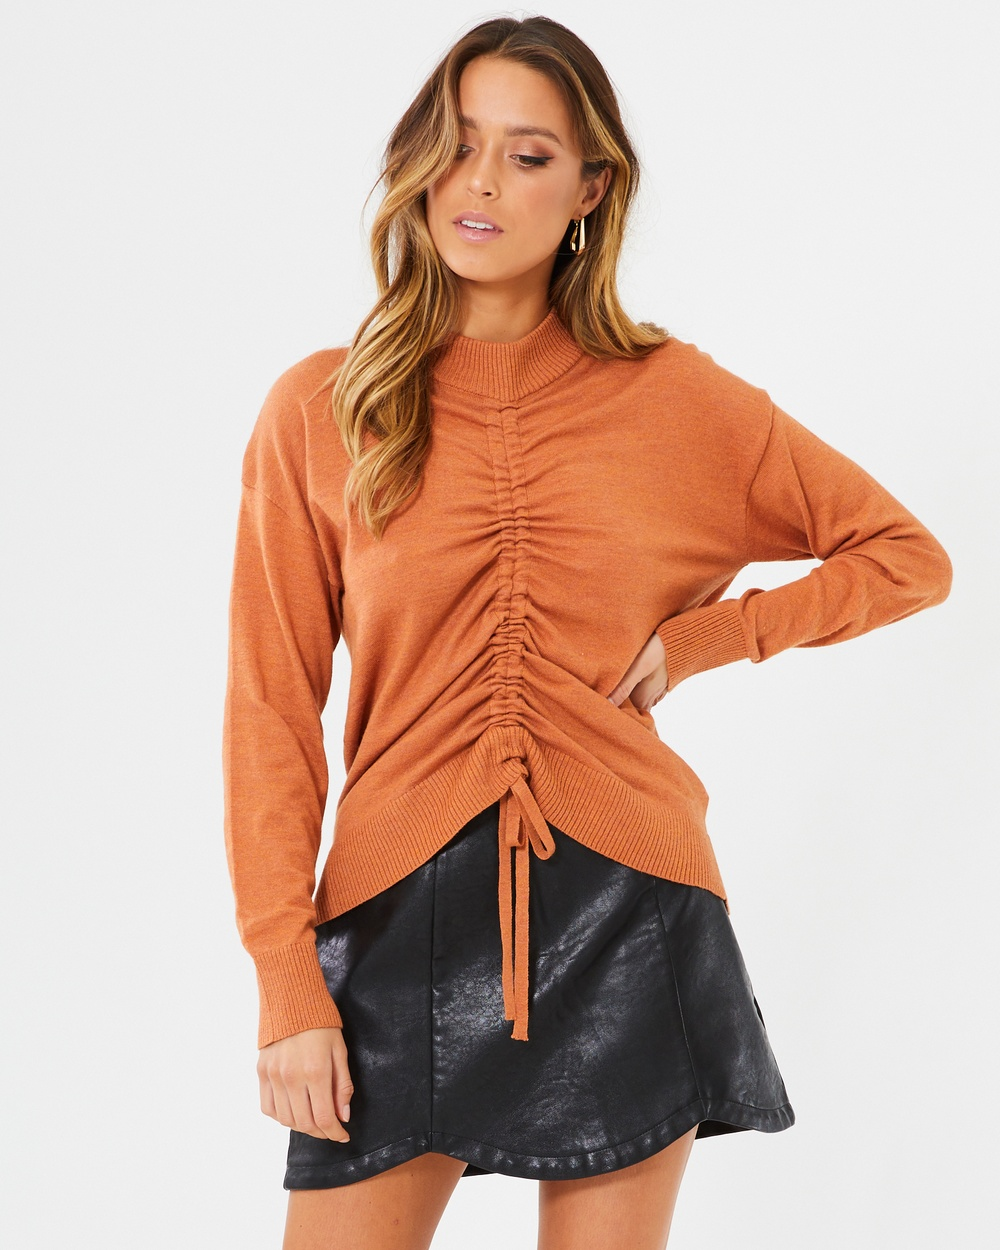 Calli Danny Ruched Knit Top Tops Rust Danny Ruched Knit Top